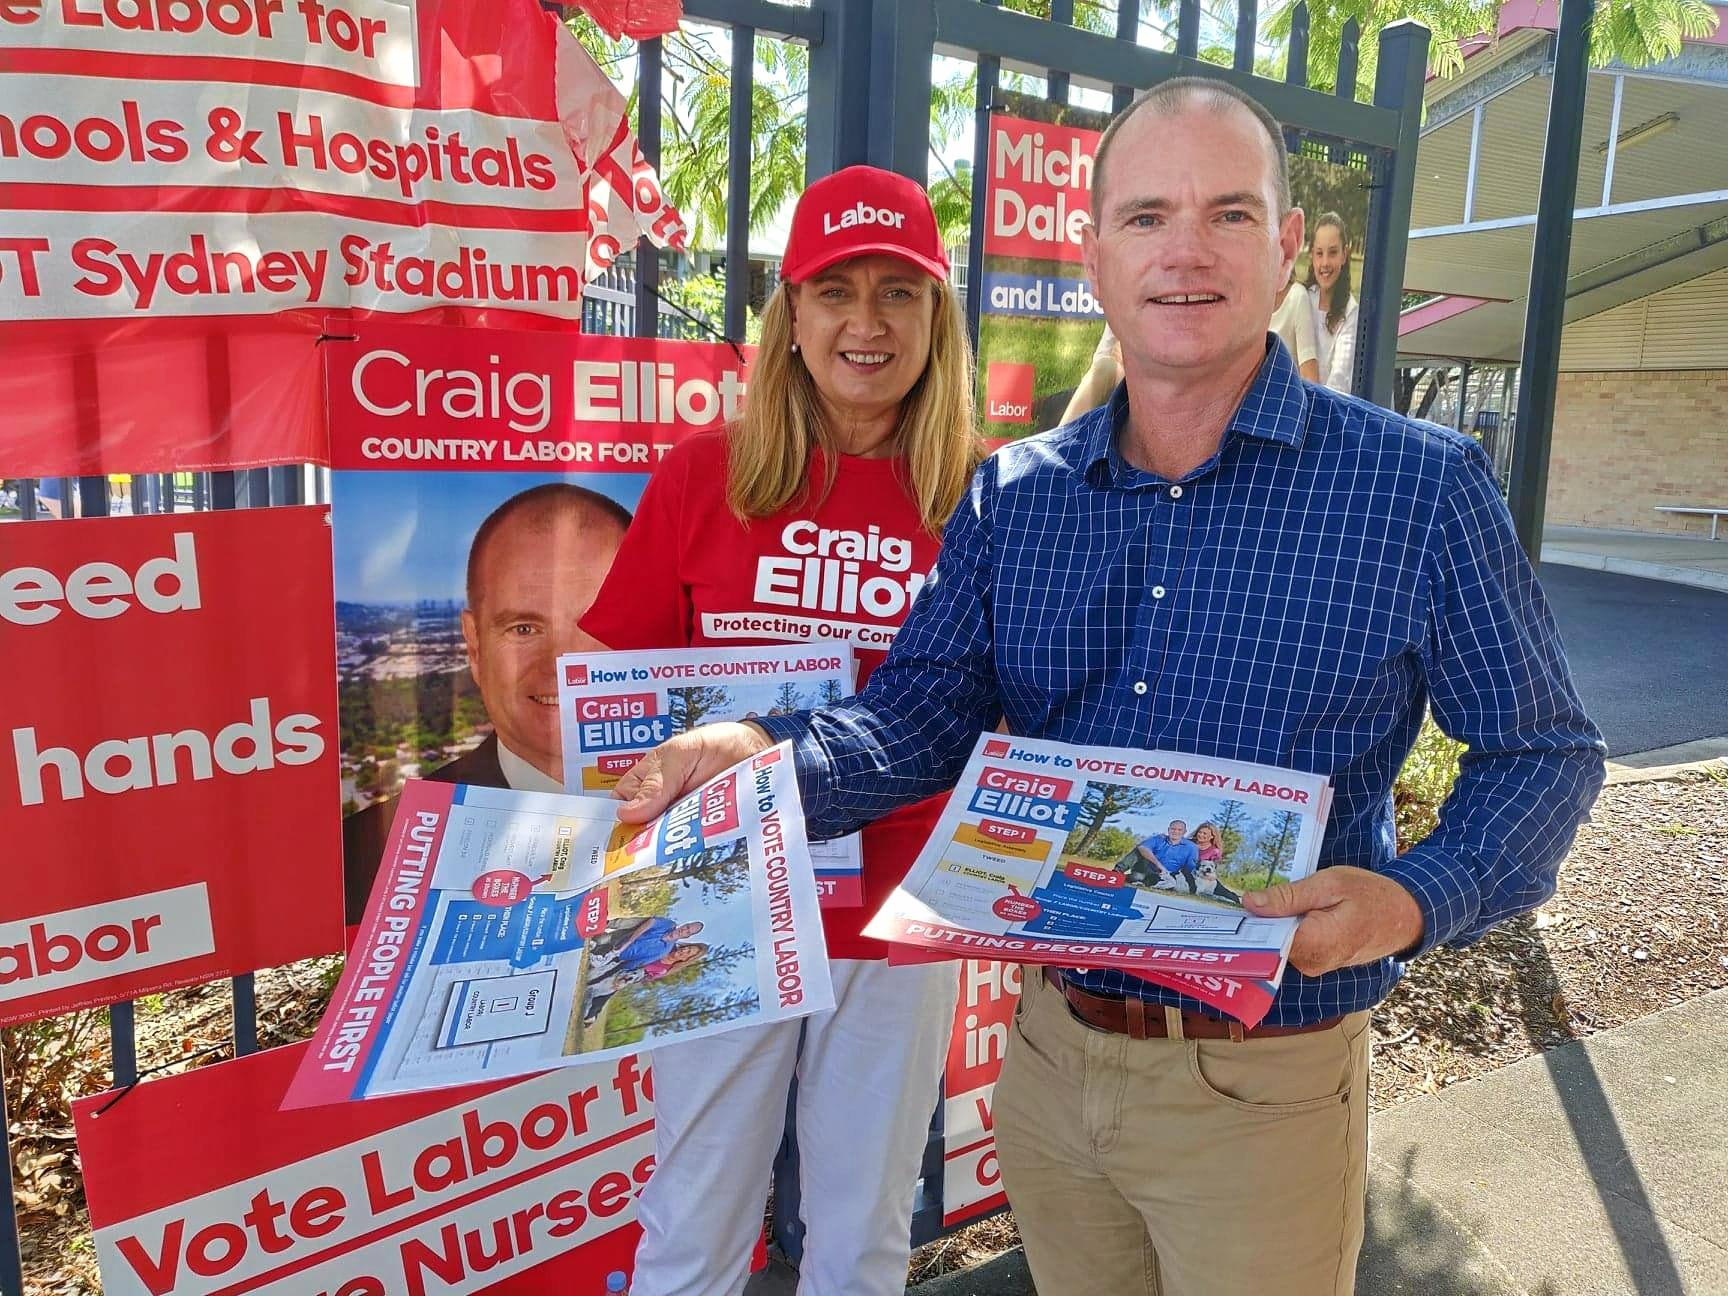 Federal Richmond MP Justine Elliot supports her husband and Labor candidate for Tweed Craig Elliot.